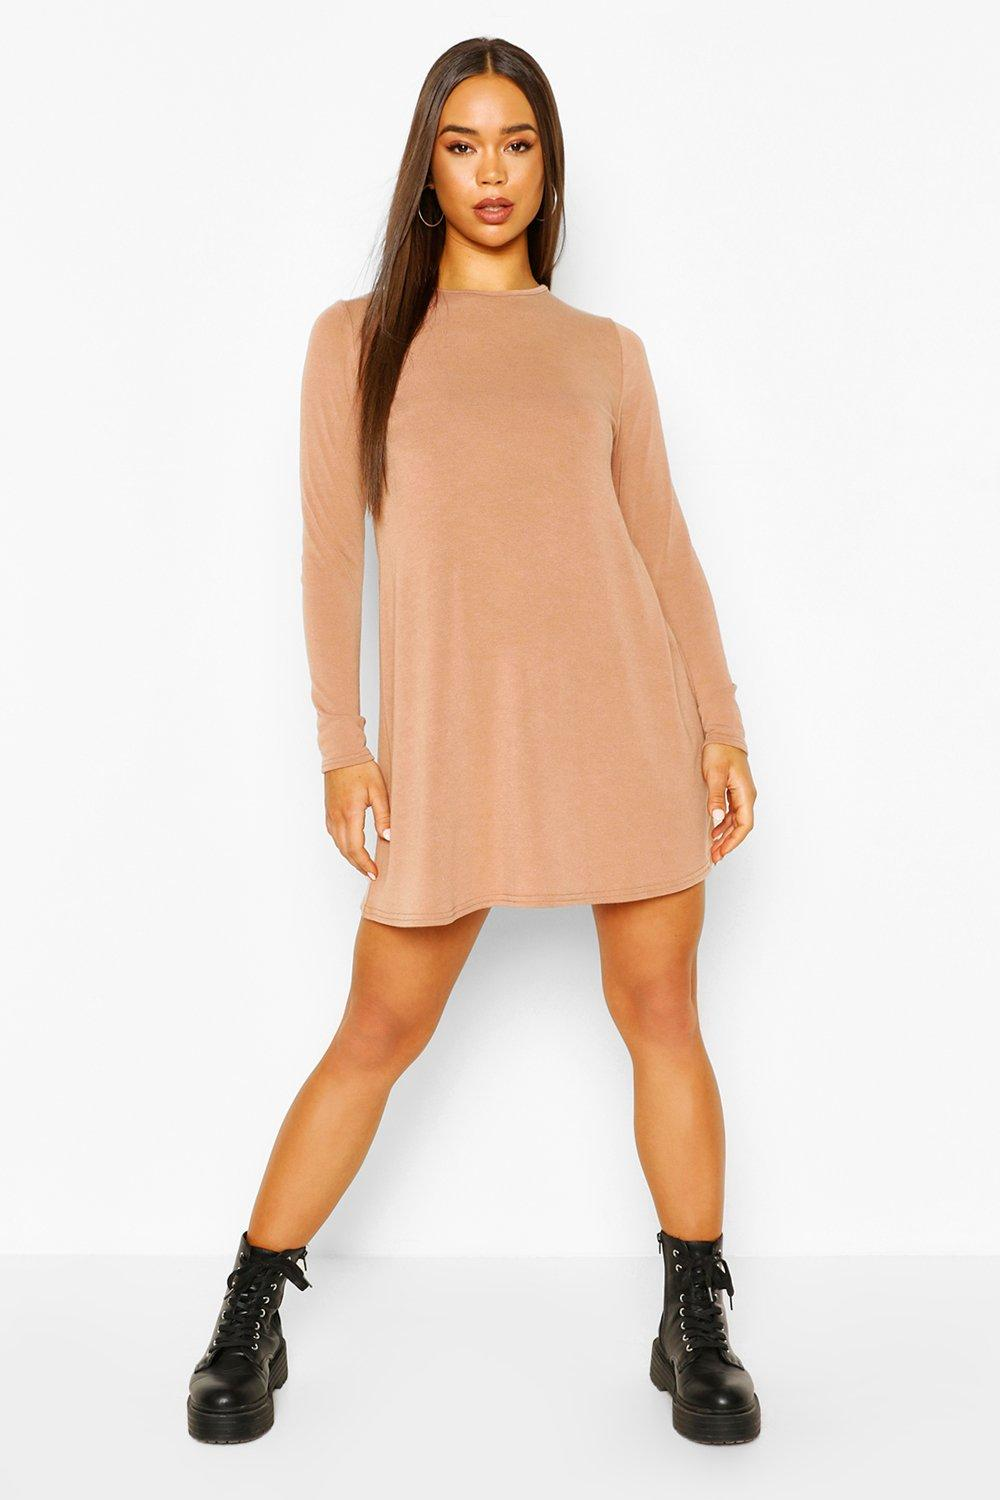 boohoo Womens Soft Knit Crew Neck Long Sleeve Swing Dress - Beige - 10, Beige